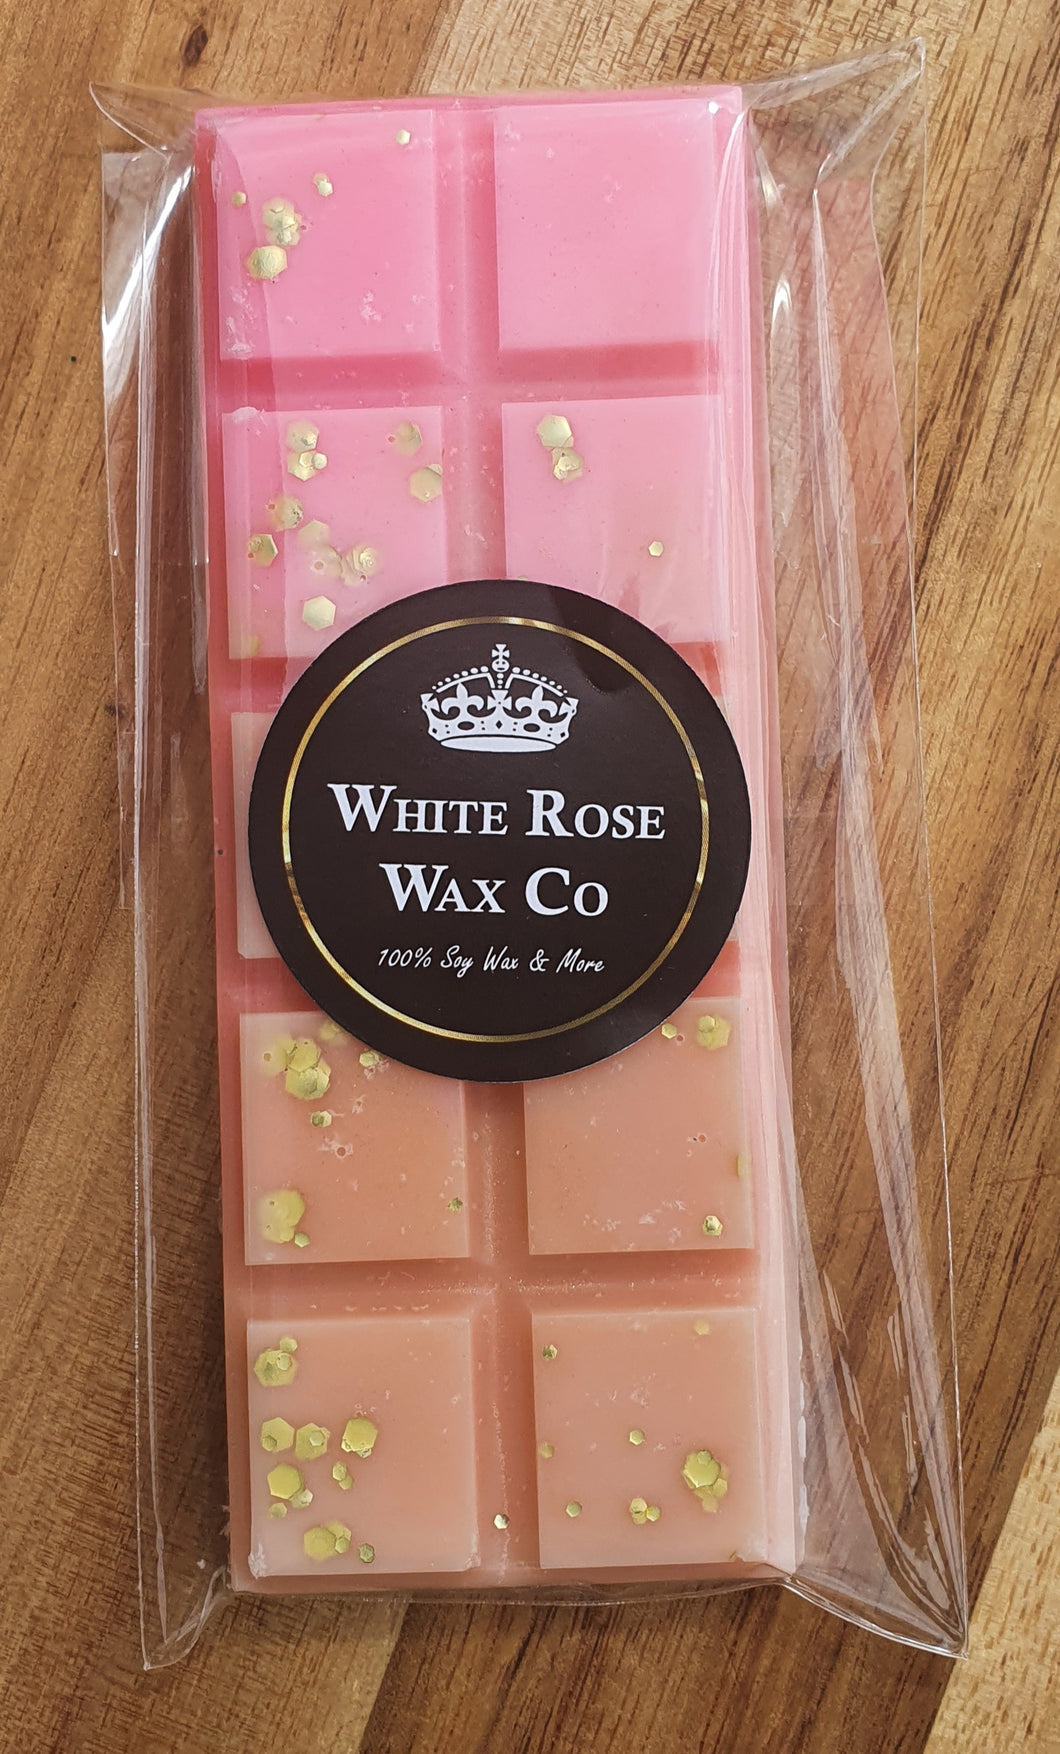 Wax Melt Snap Bar - Strawberry & Rhubarb Pie